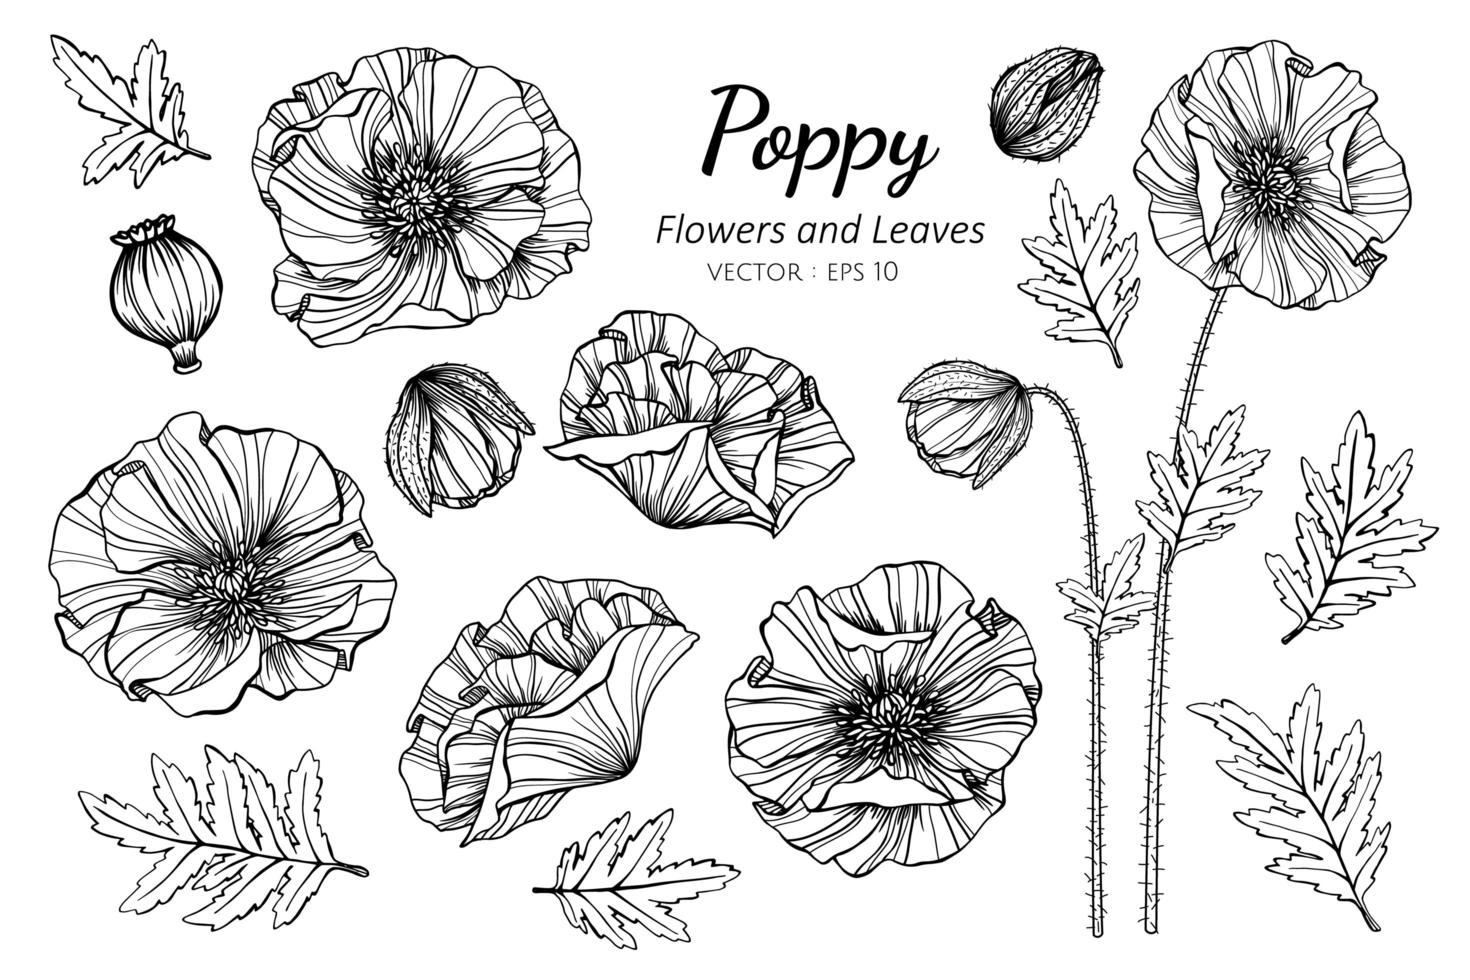 Collection of Poppy flowers and leaves vector